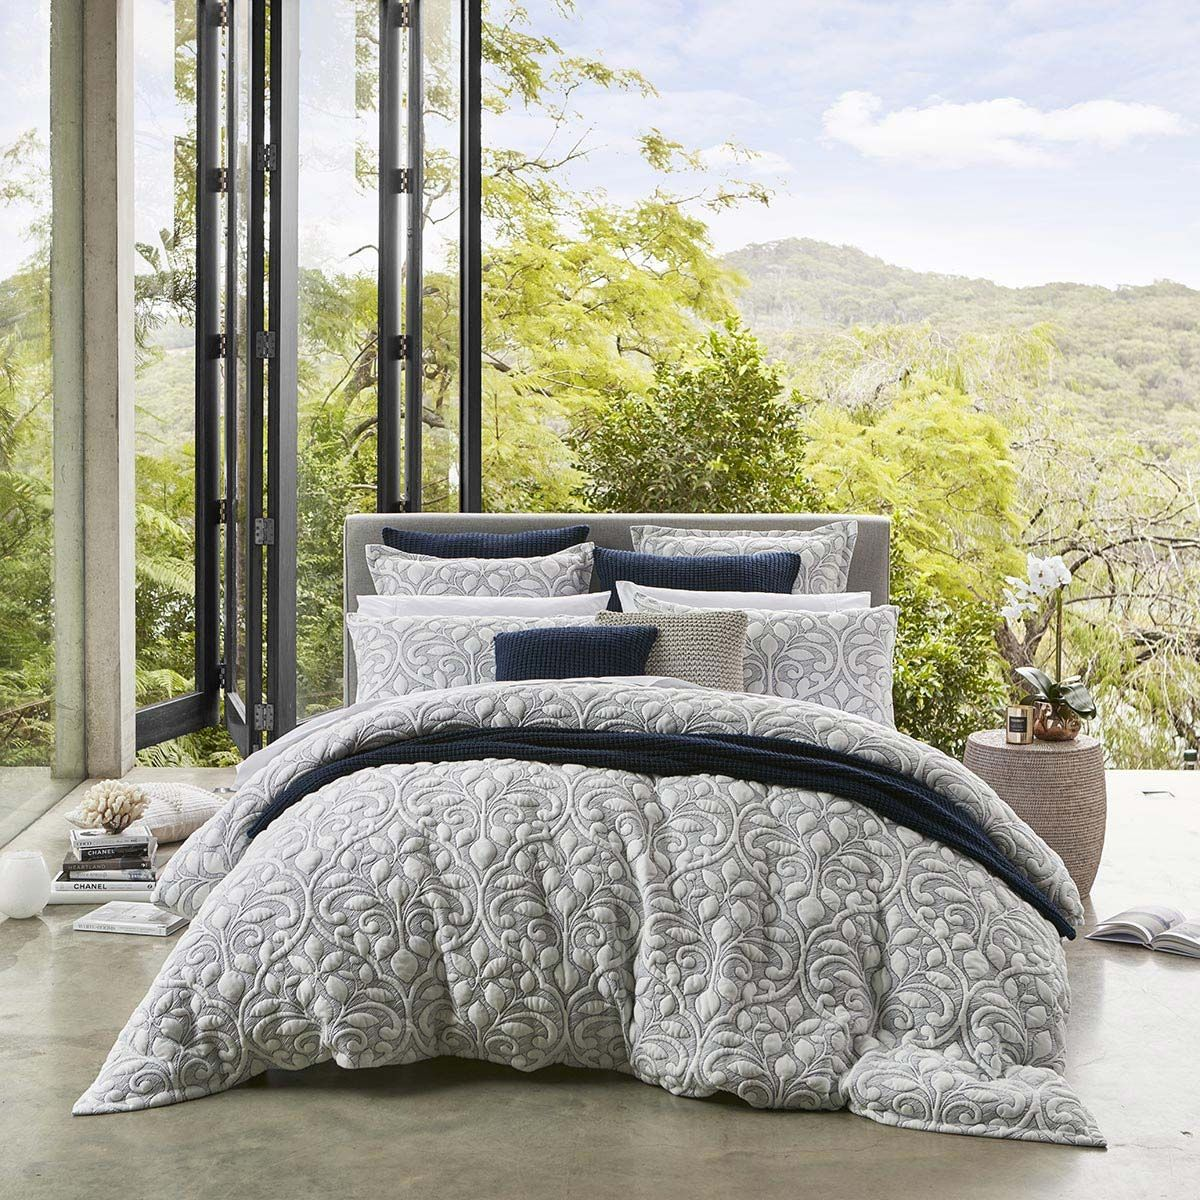 Liana Navy Quilt Cover Set By Logan U0026 Mason Makes A Stunning Designer  Statement. Floral